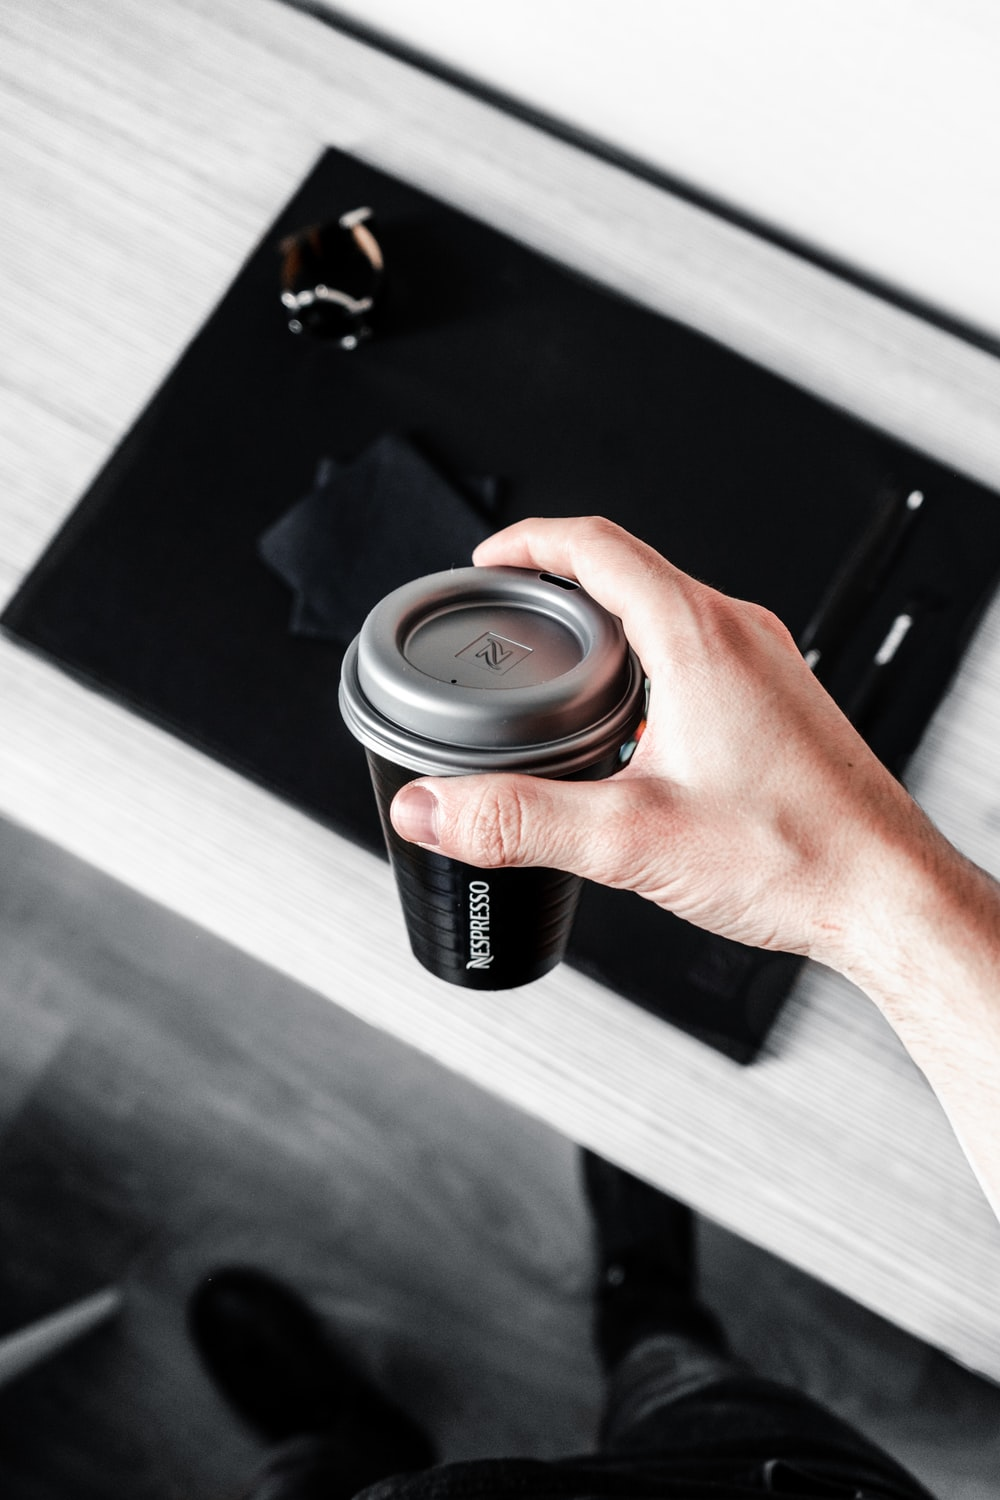 person holding black Nescafe coffee cup with lid